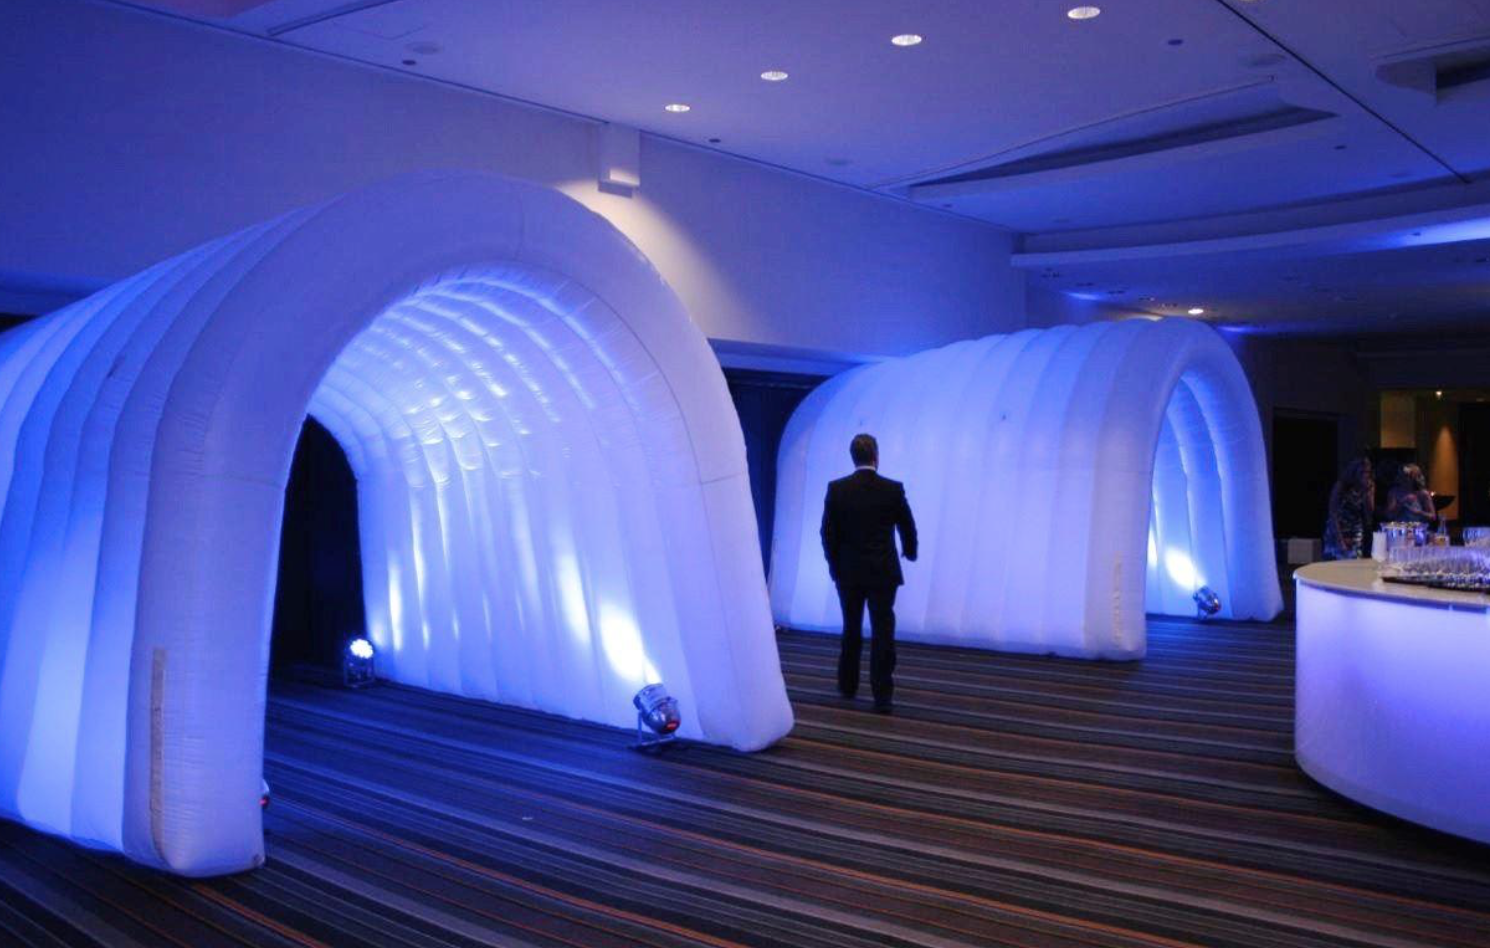 led-inflatable-tunnels